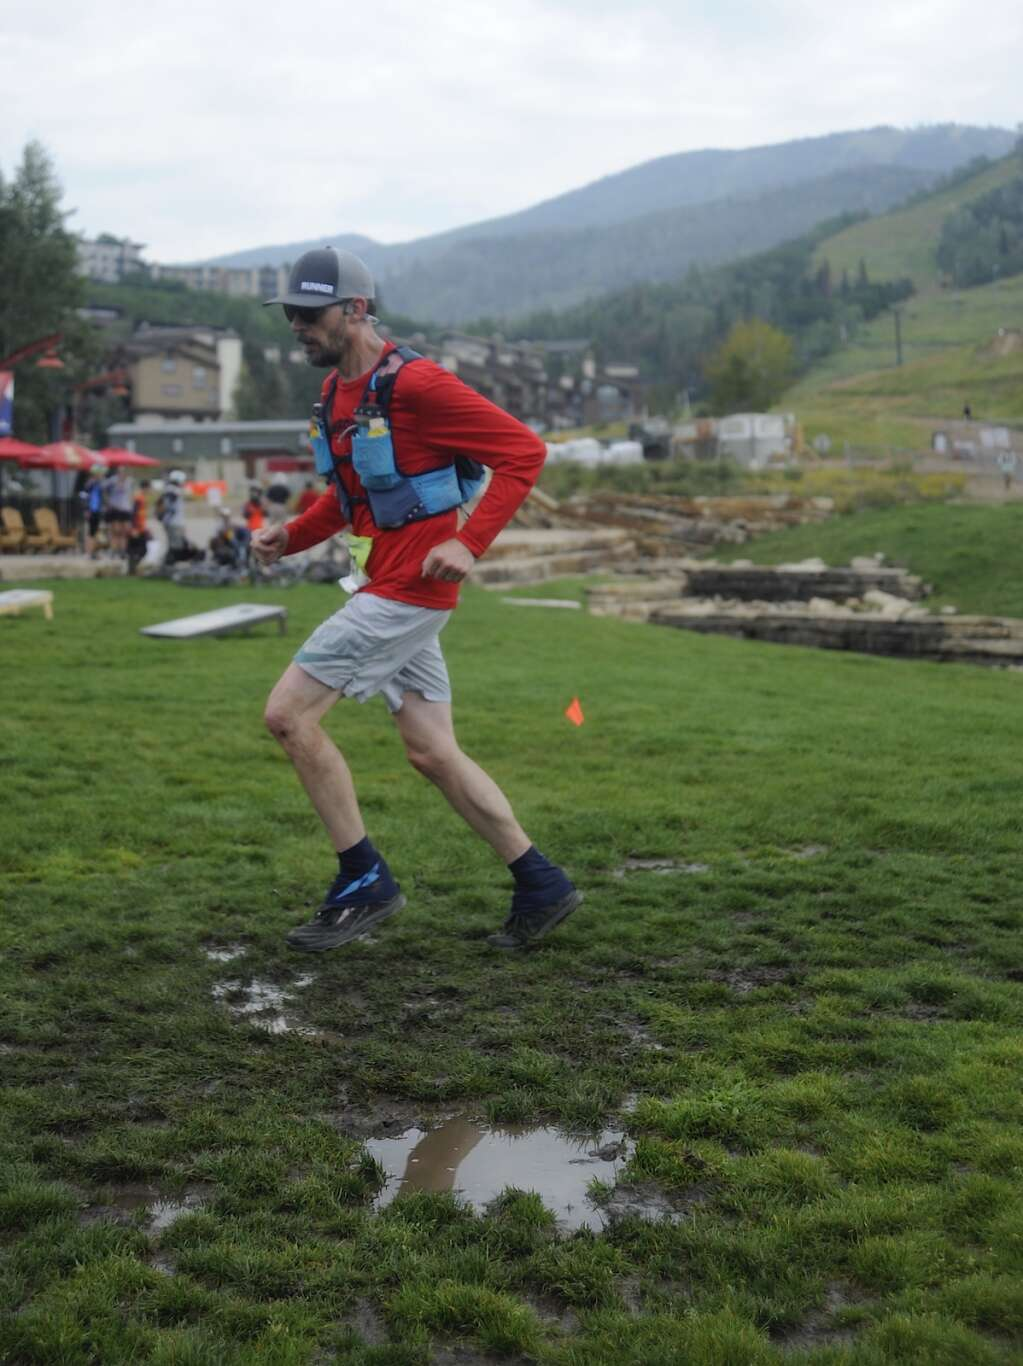 A runner nears the finish line at the Continental Divide Trail Run on Saturday morning. (Photo by Shelby Reardon)